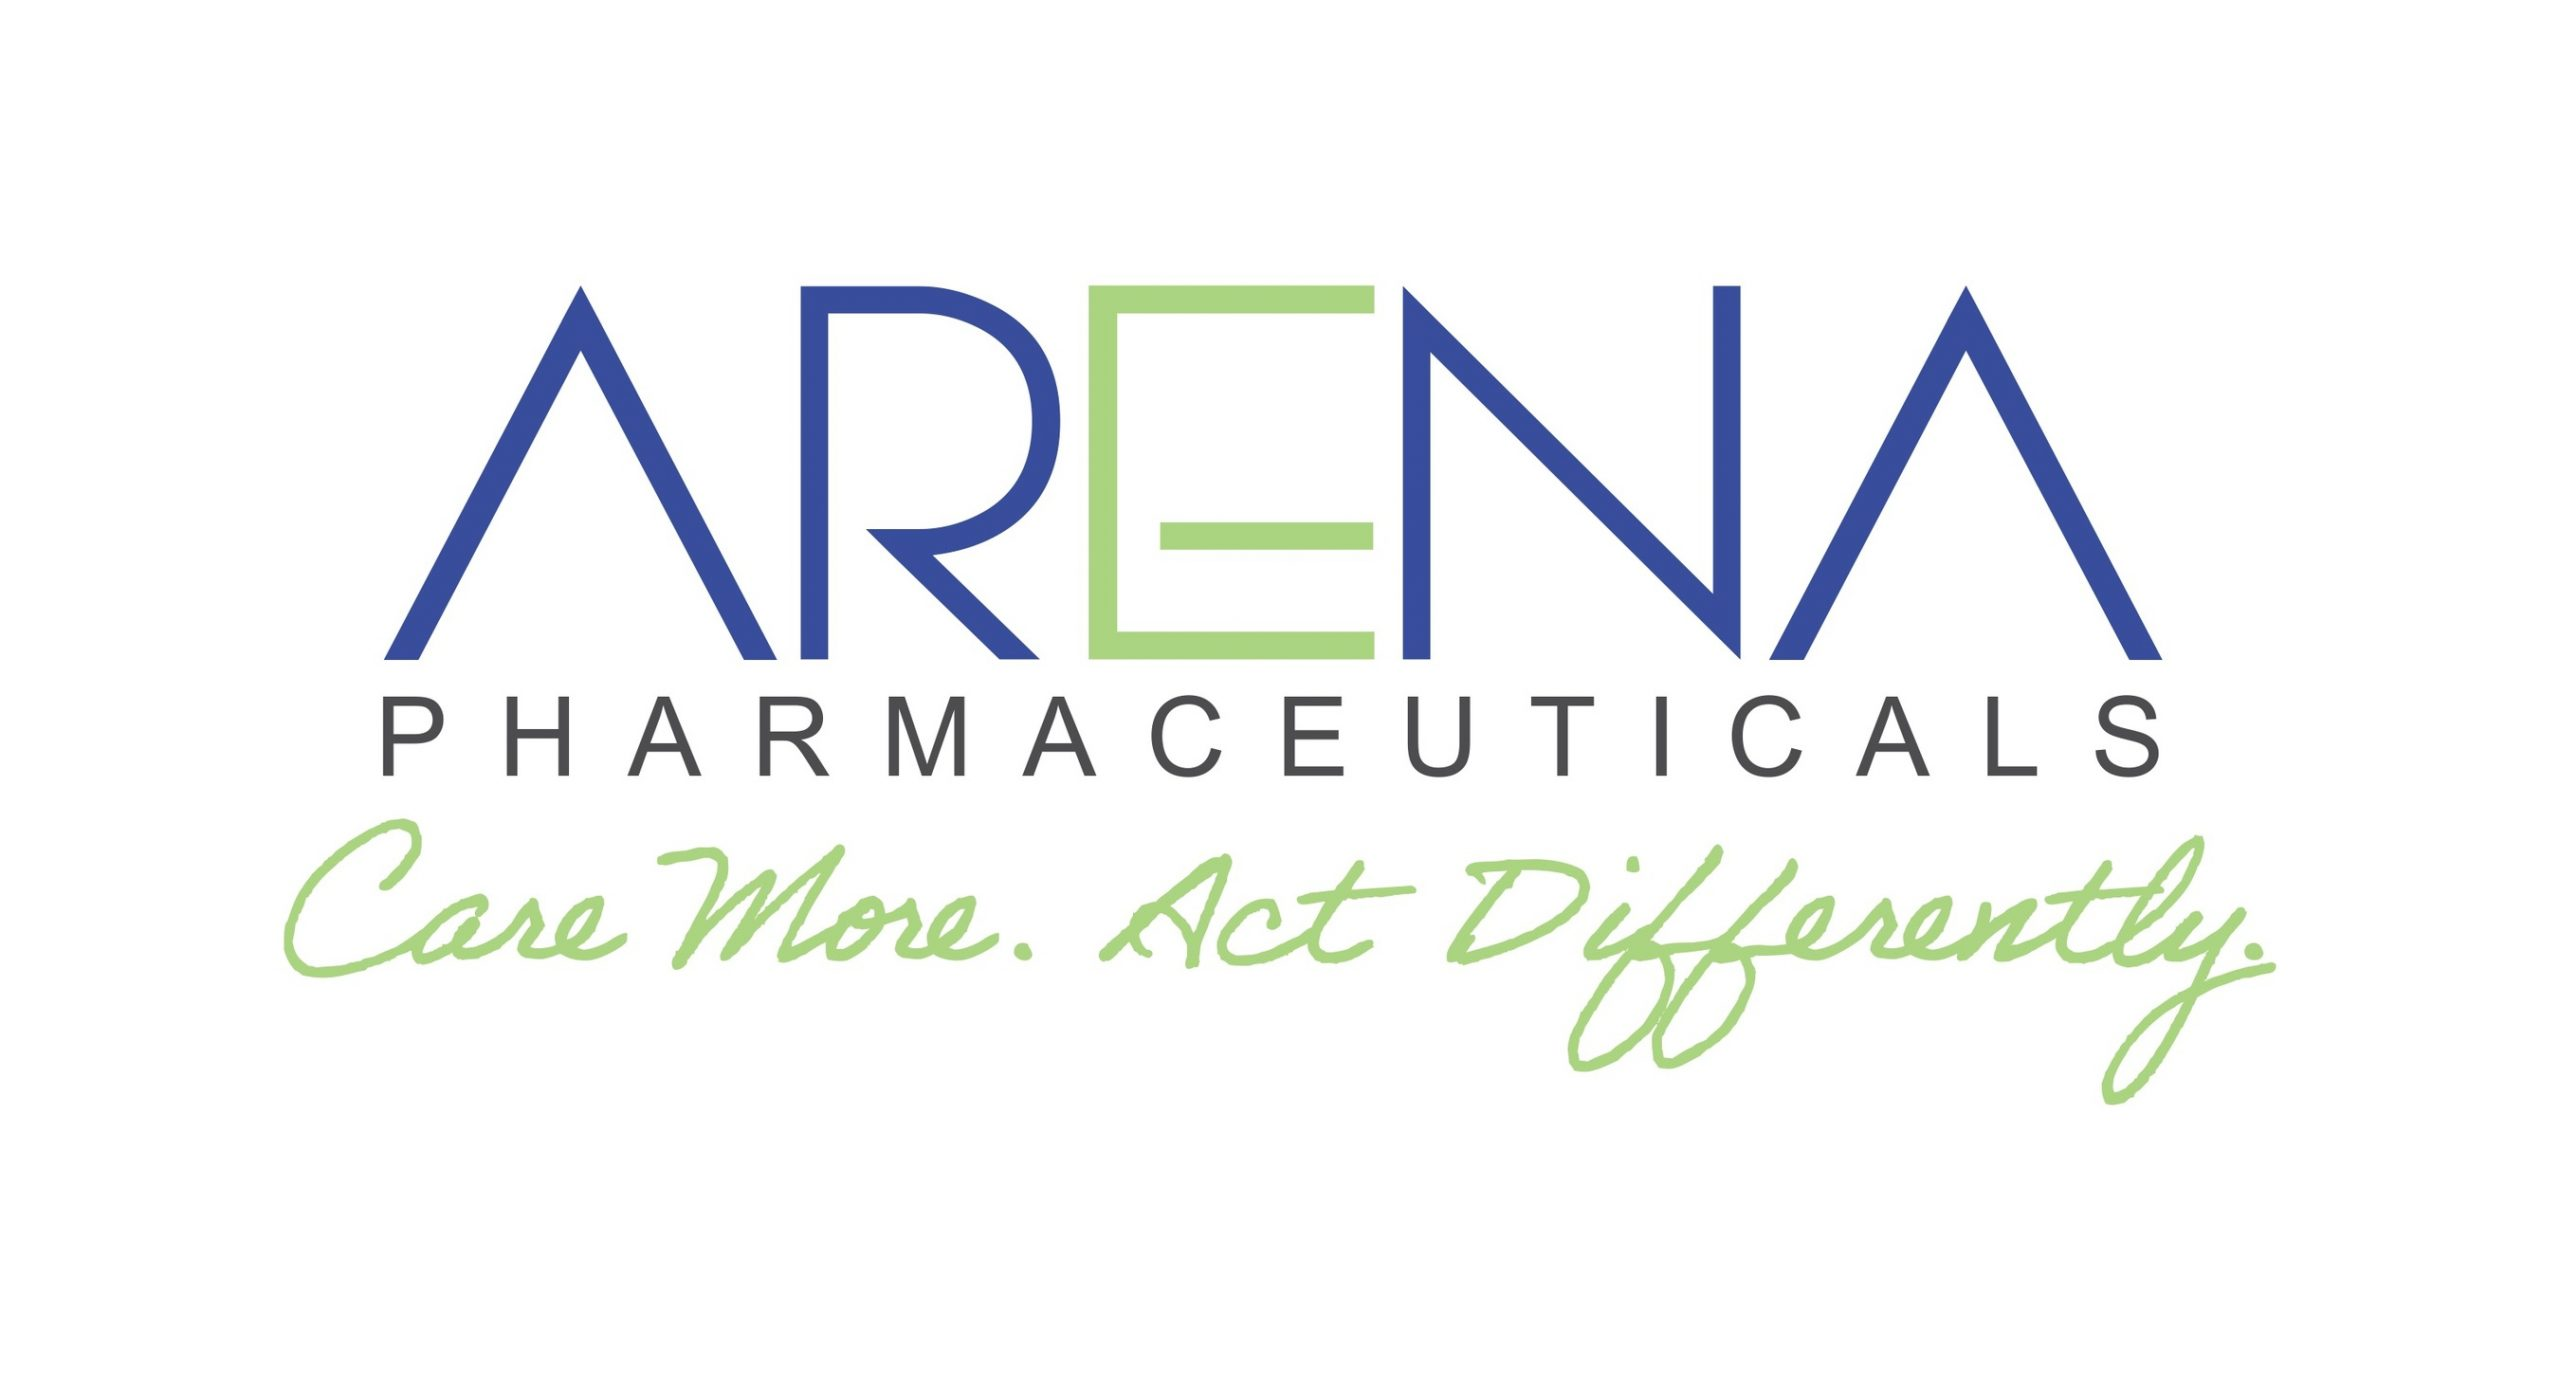 Arena Pharmaceuticals to Present at the J.P. Morgan Healthcare Conference on January 13